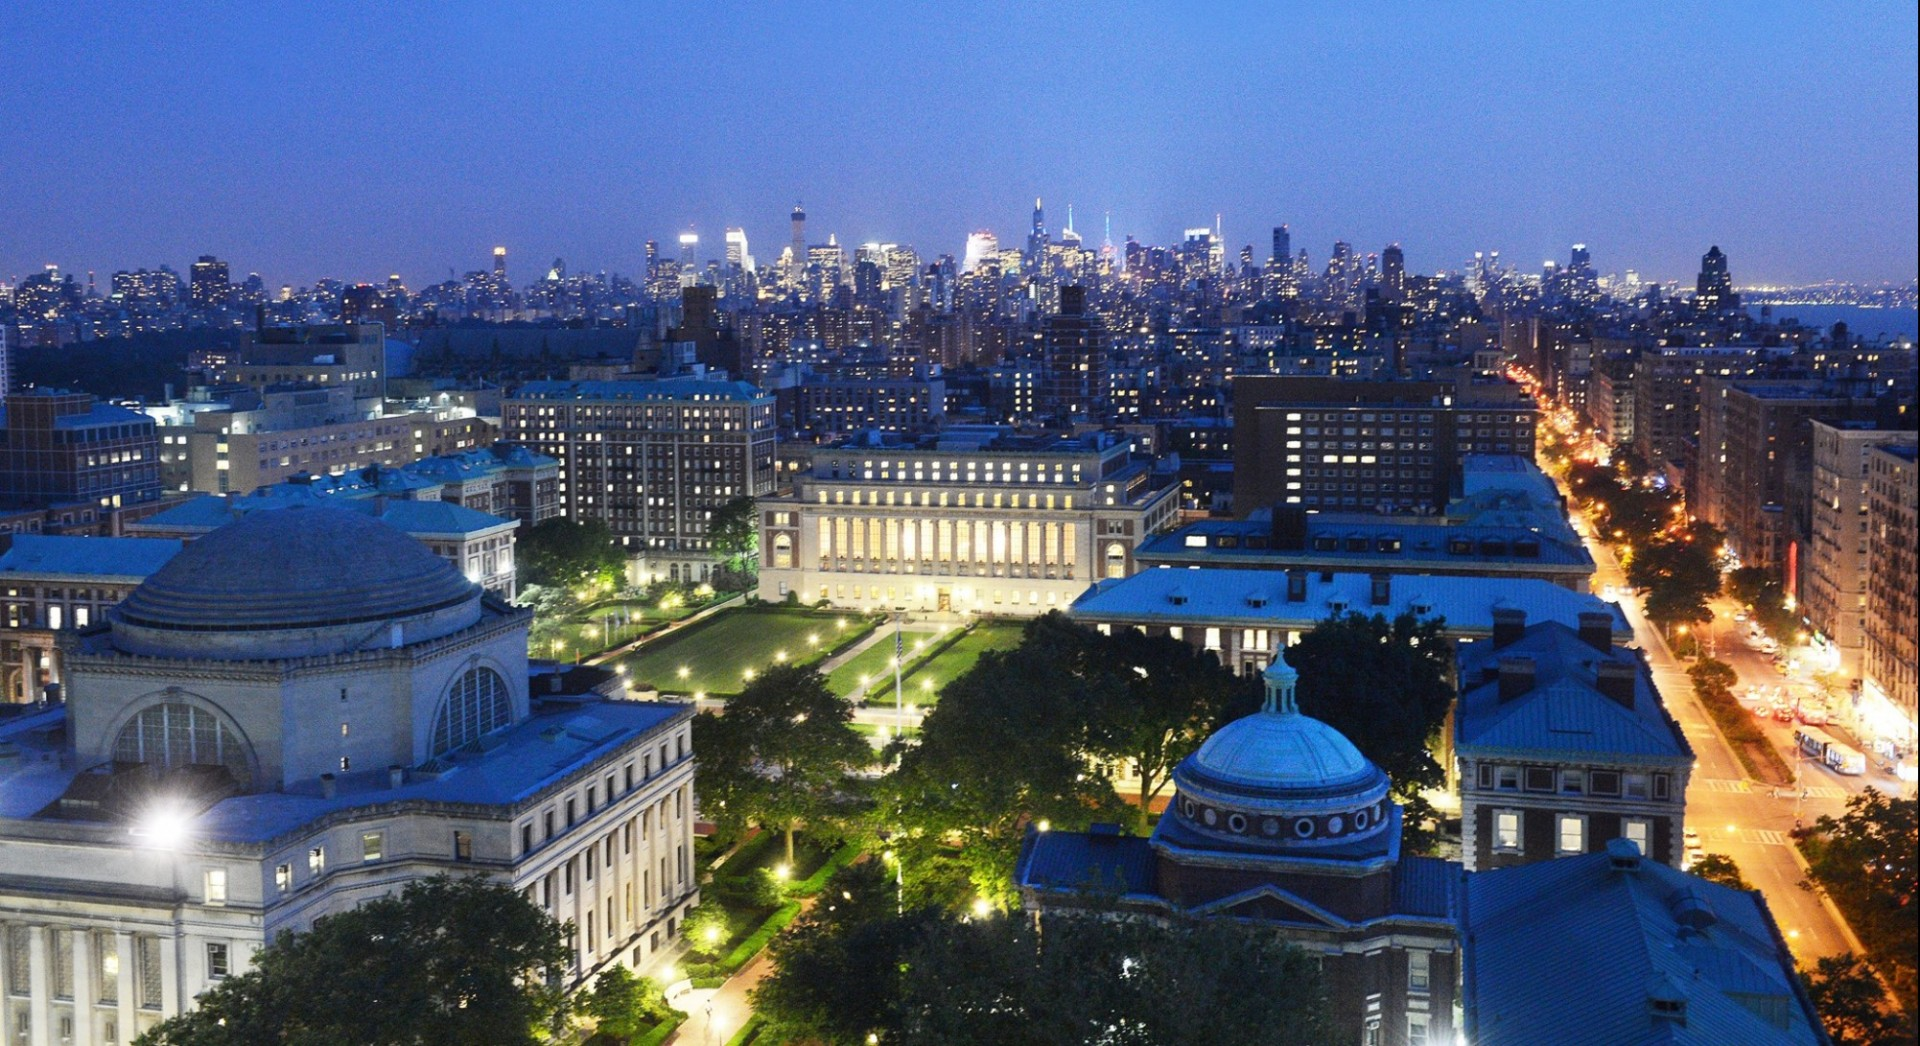 Aerial View of Columbia University's Morningside Campus